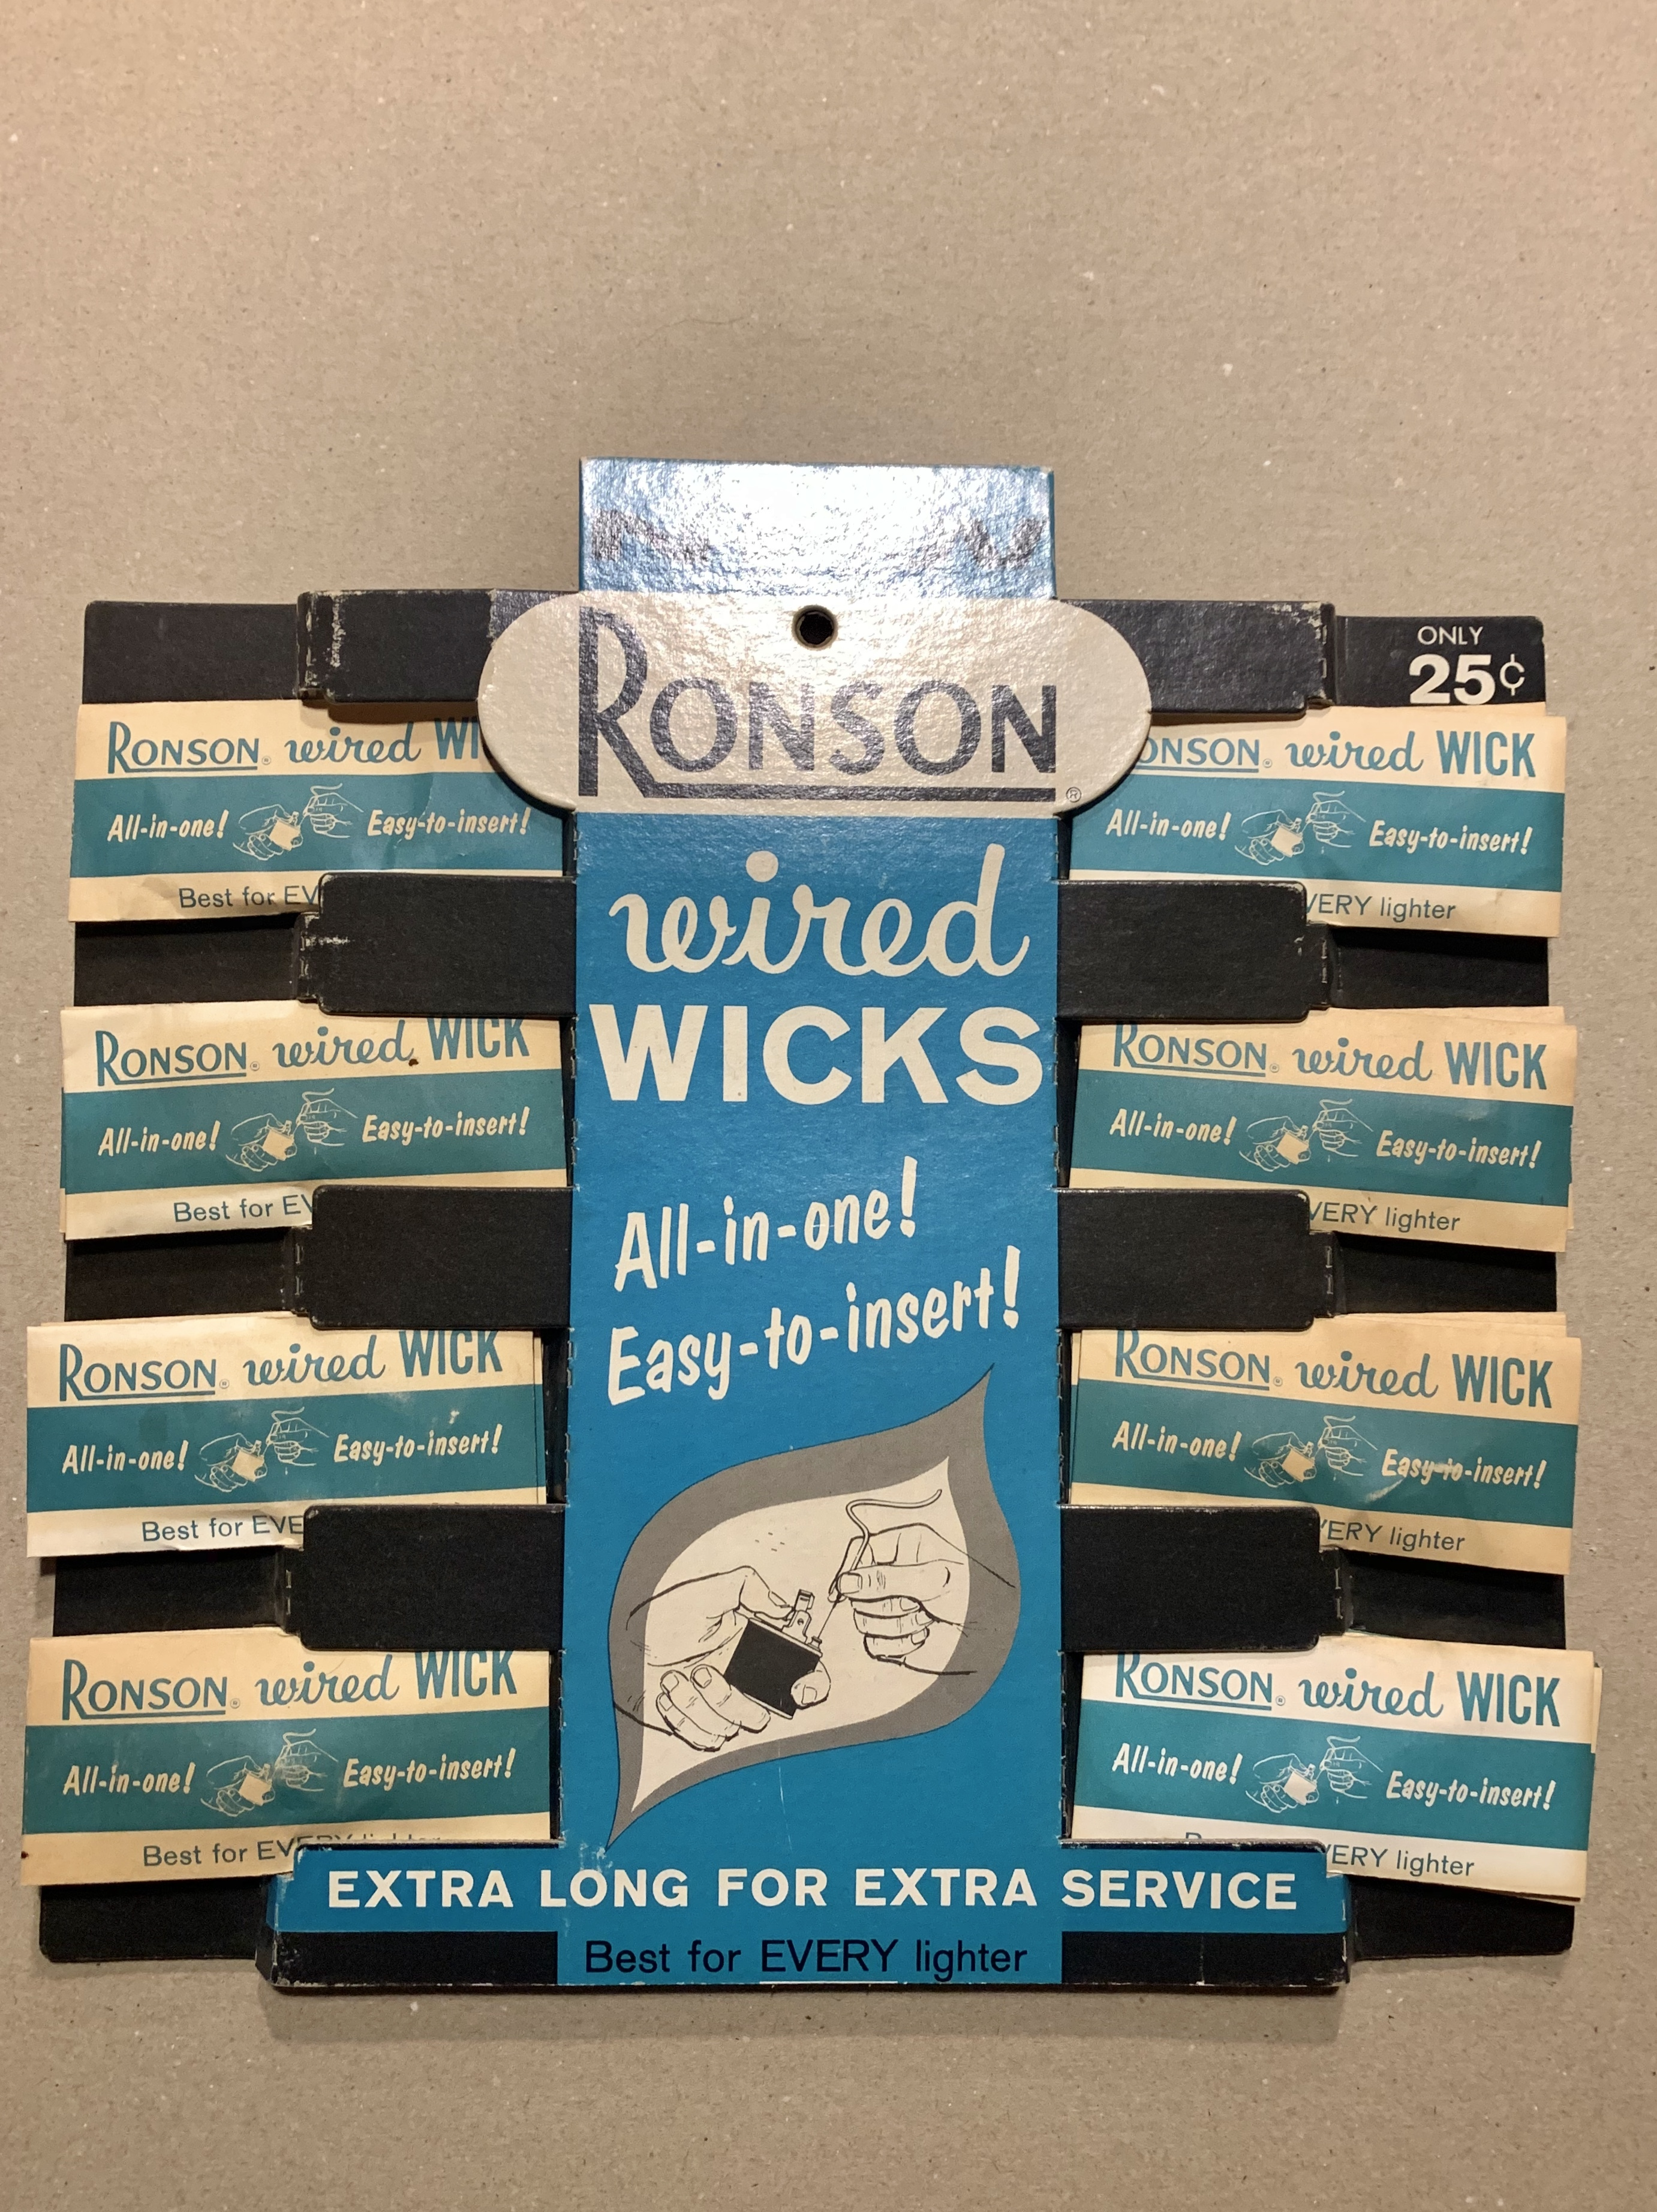 Antique Display Bord 〝Robson wire wicks〟ロンソン ライターディスプレーボード